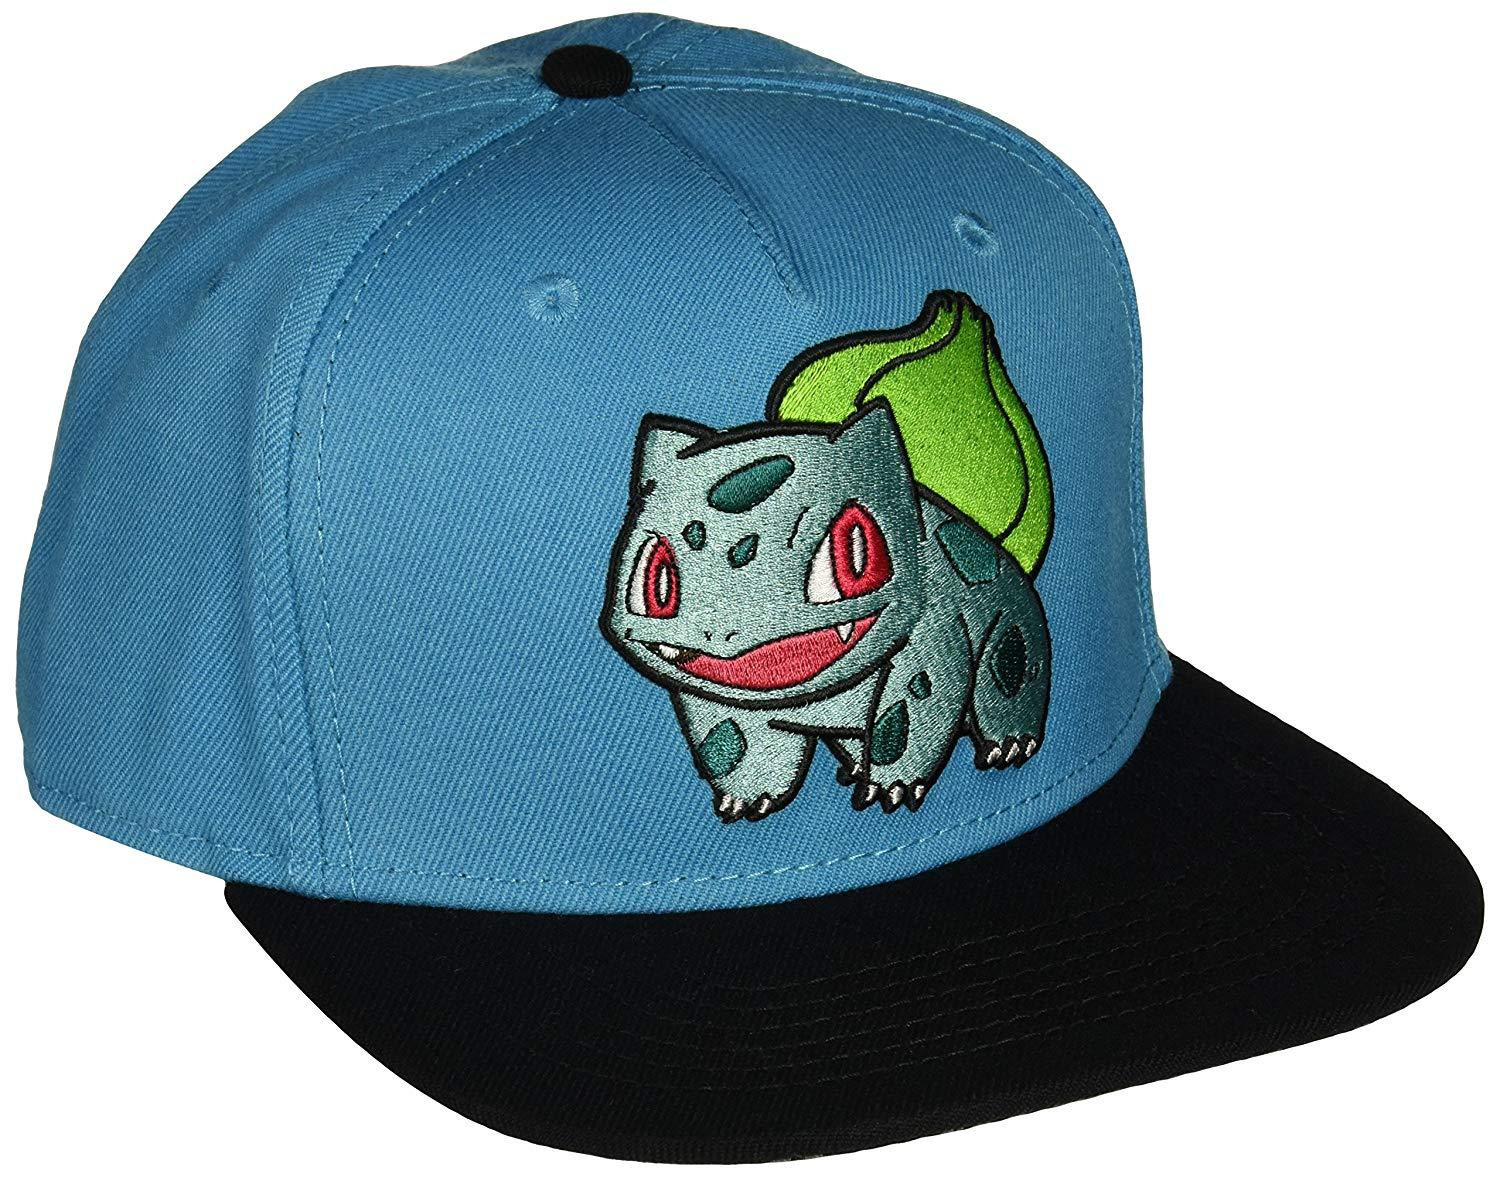 Pokemon - Bulbasaur Embroidered Blue Snapback